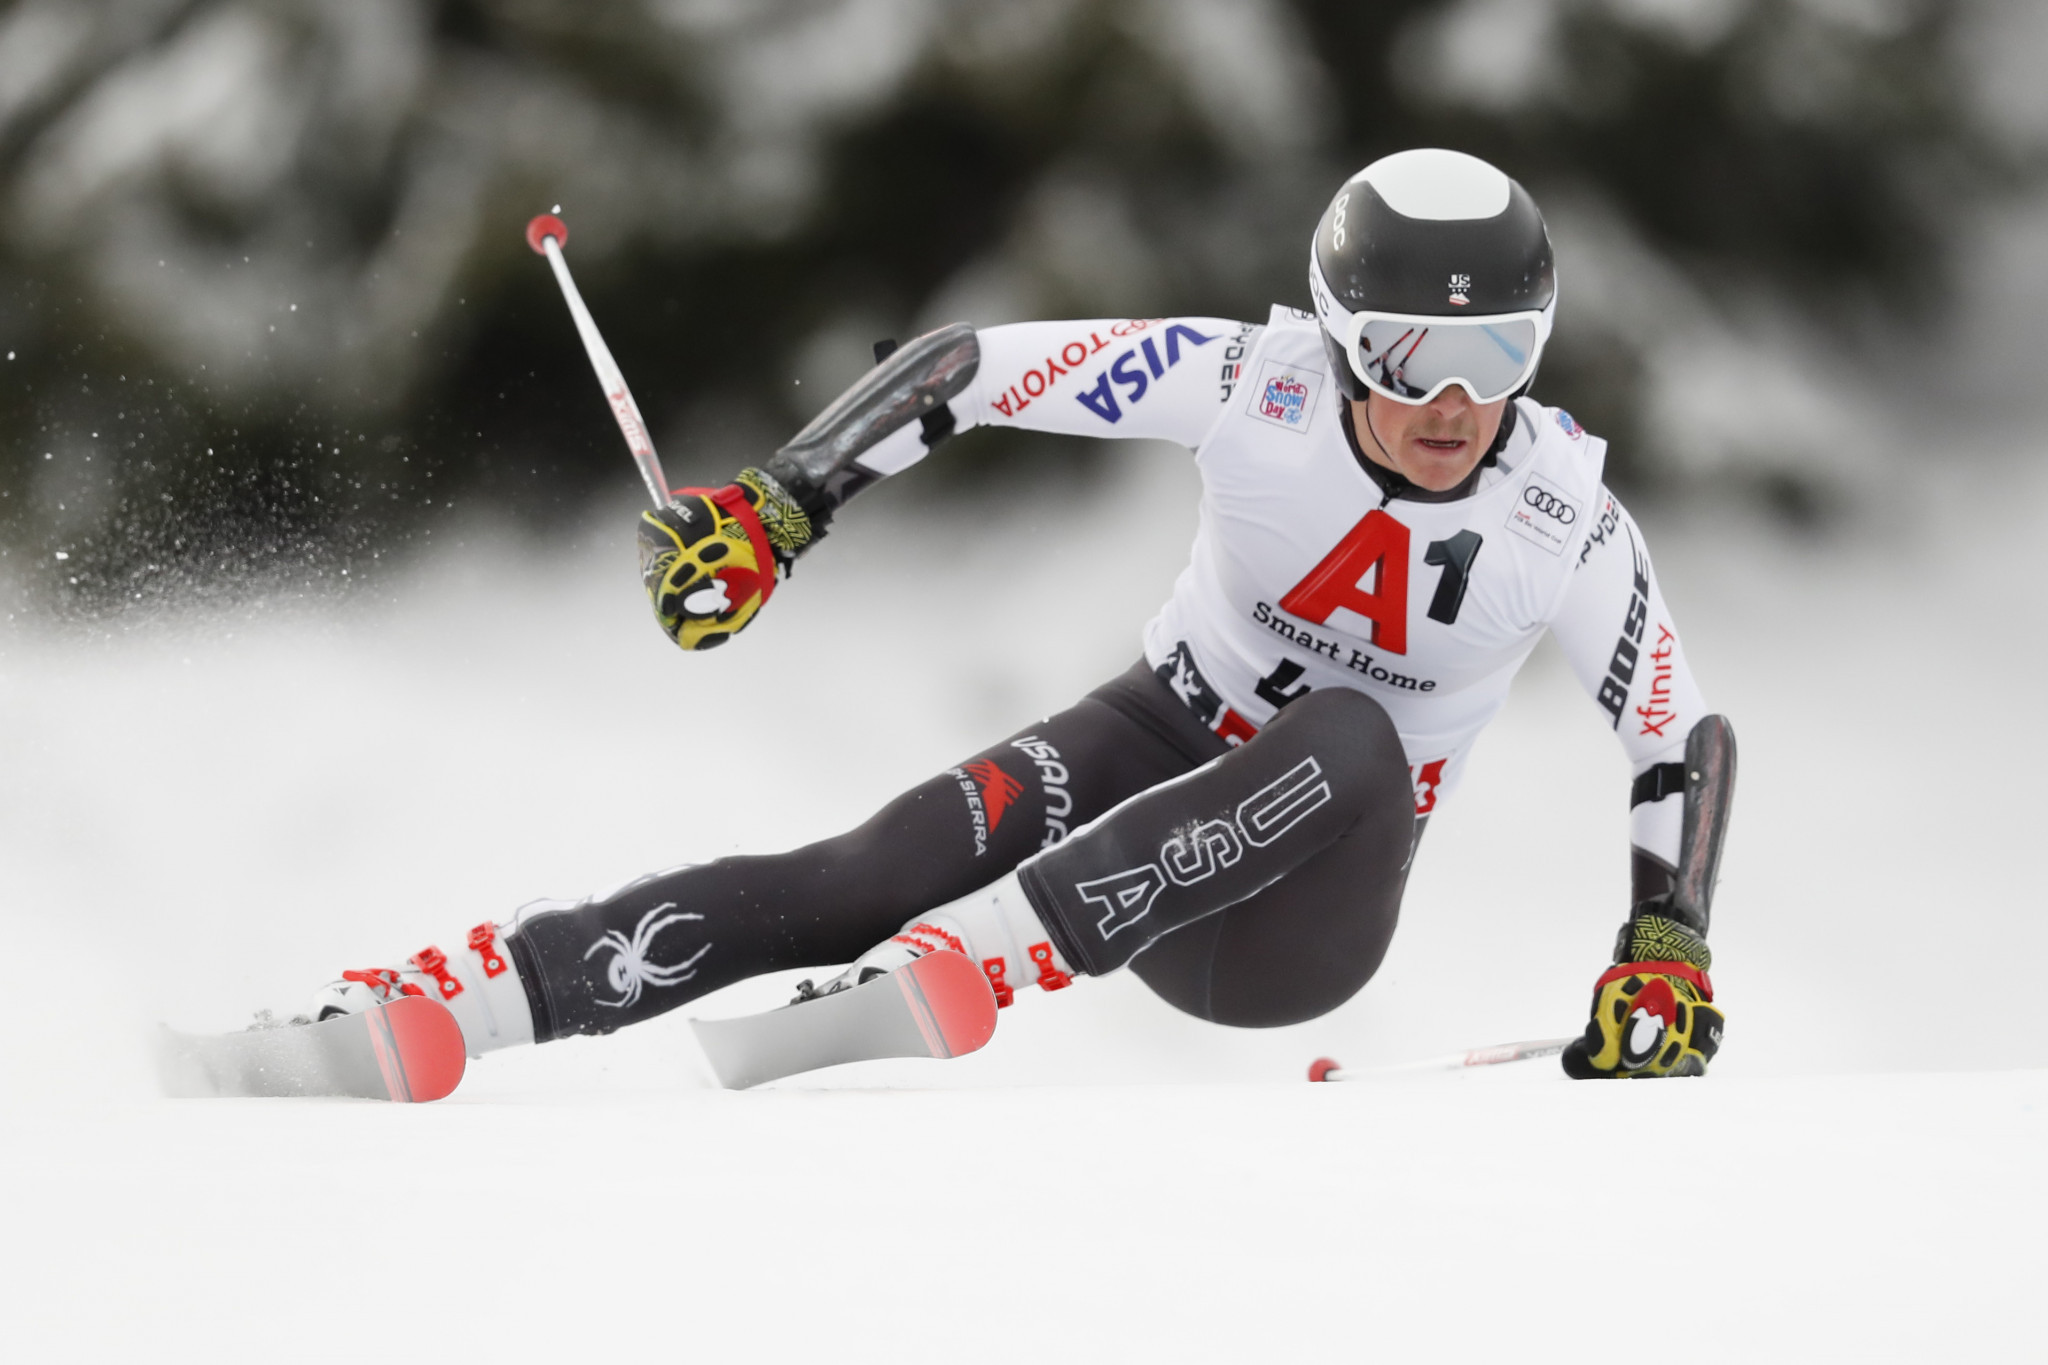 First medal for US at FIS World Junior Alpine Skiing Championships as Radamus wins men's super-G